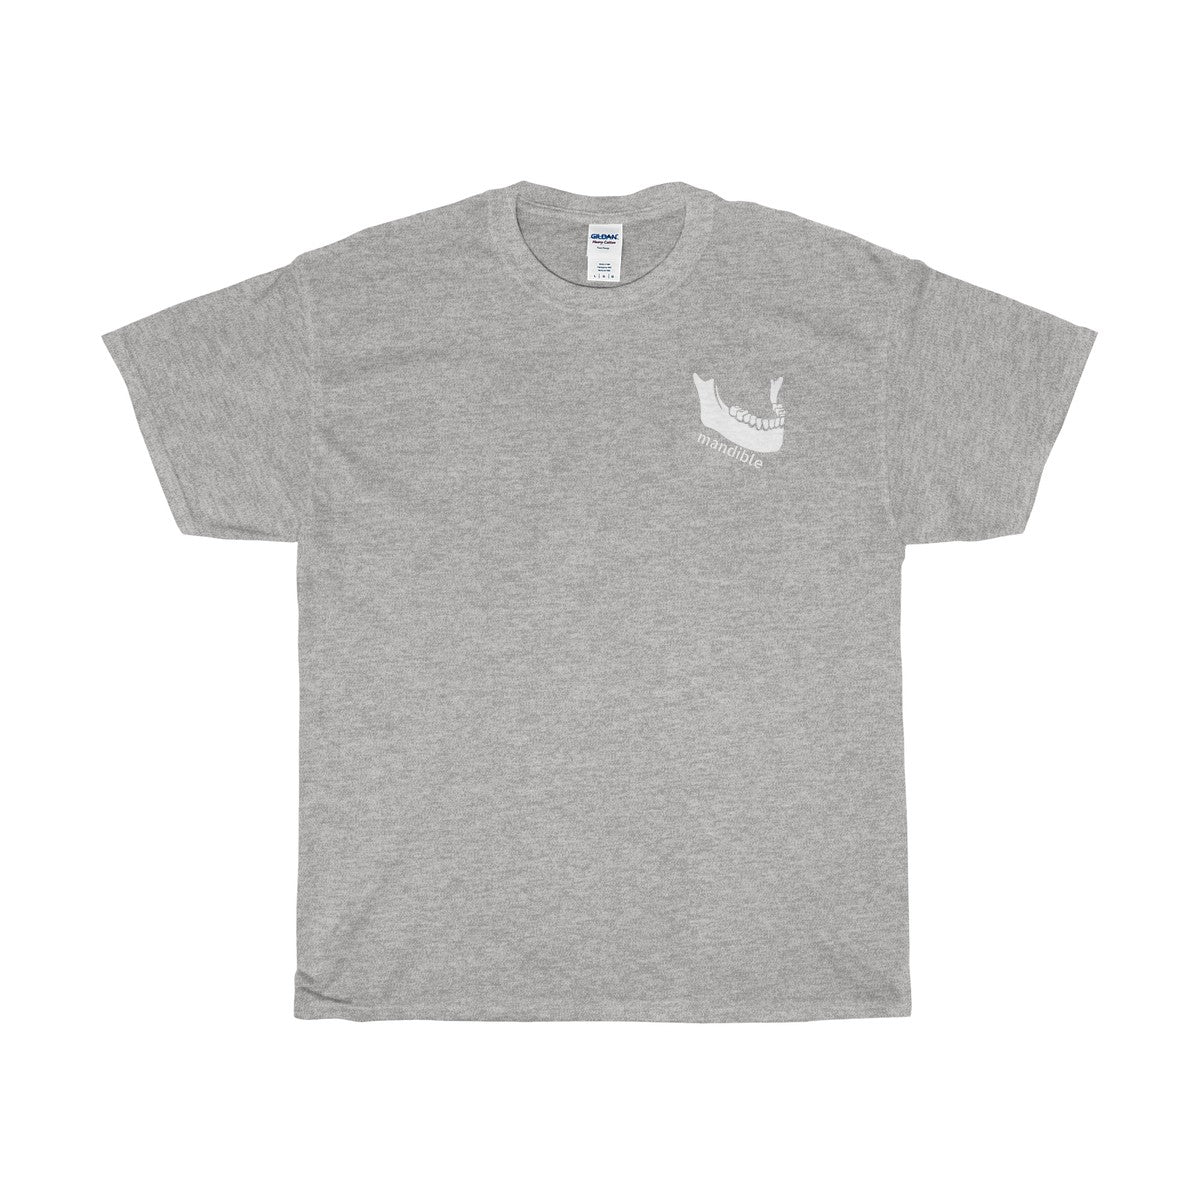 MEN'S HEAVY COTTON TEE